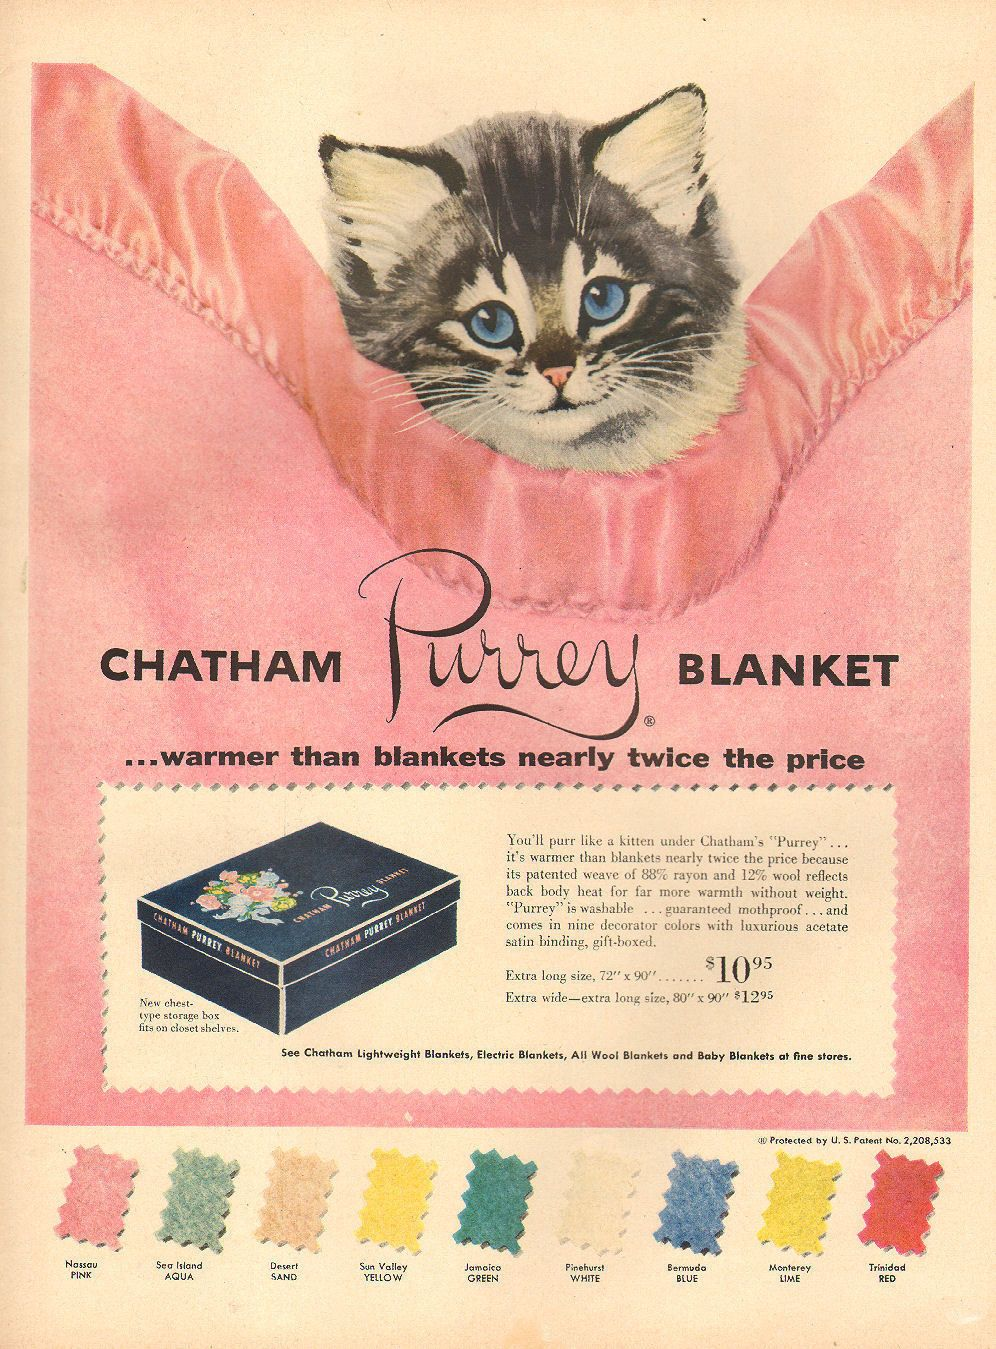 Pin By J E Hart On Cats Vintage Advertisements Pet Advertising Vintage Poster Art